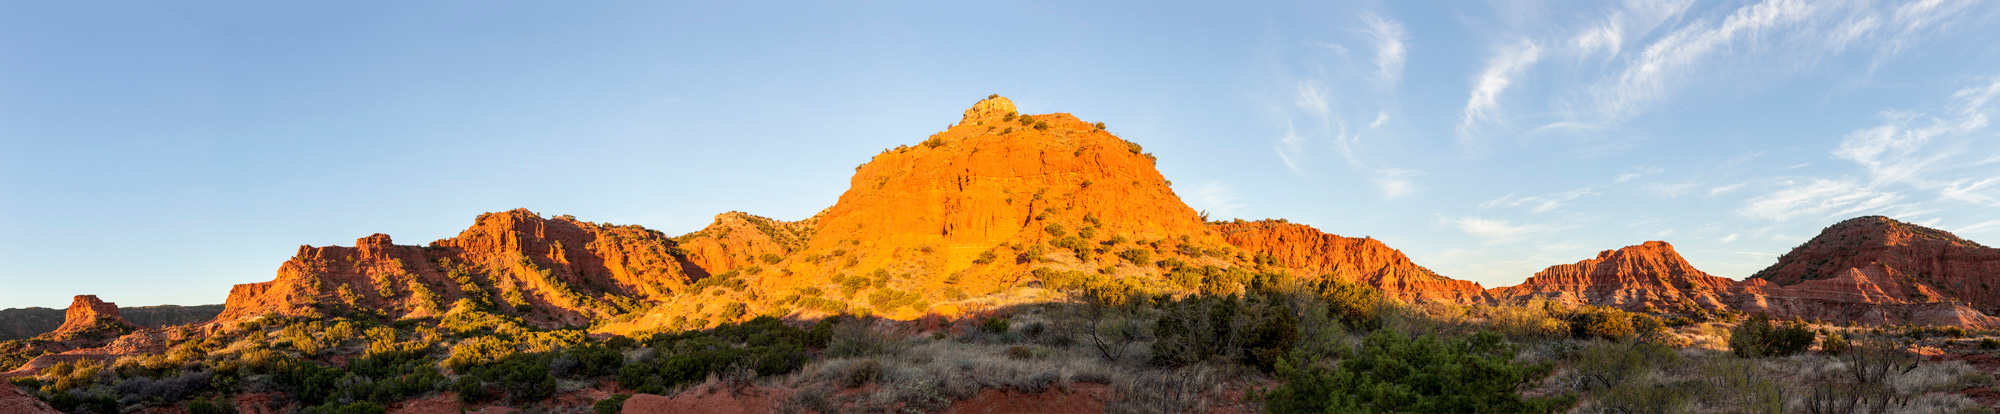 First Light - Upper Canyon Trail - Caprock Canyons State Park, Texas